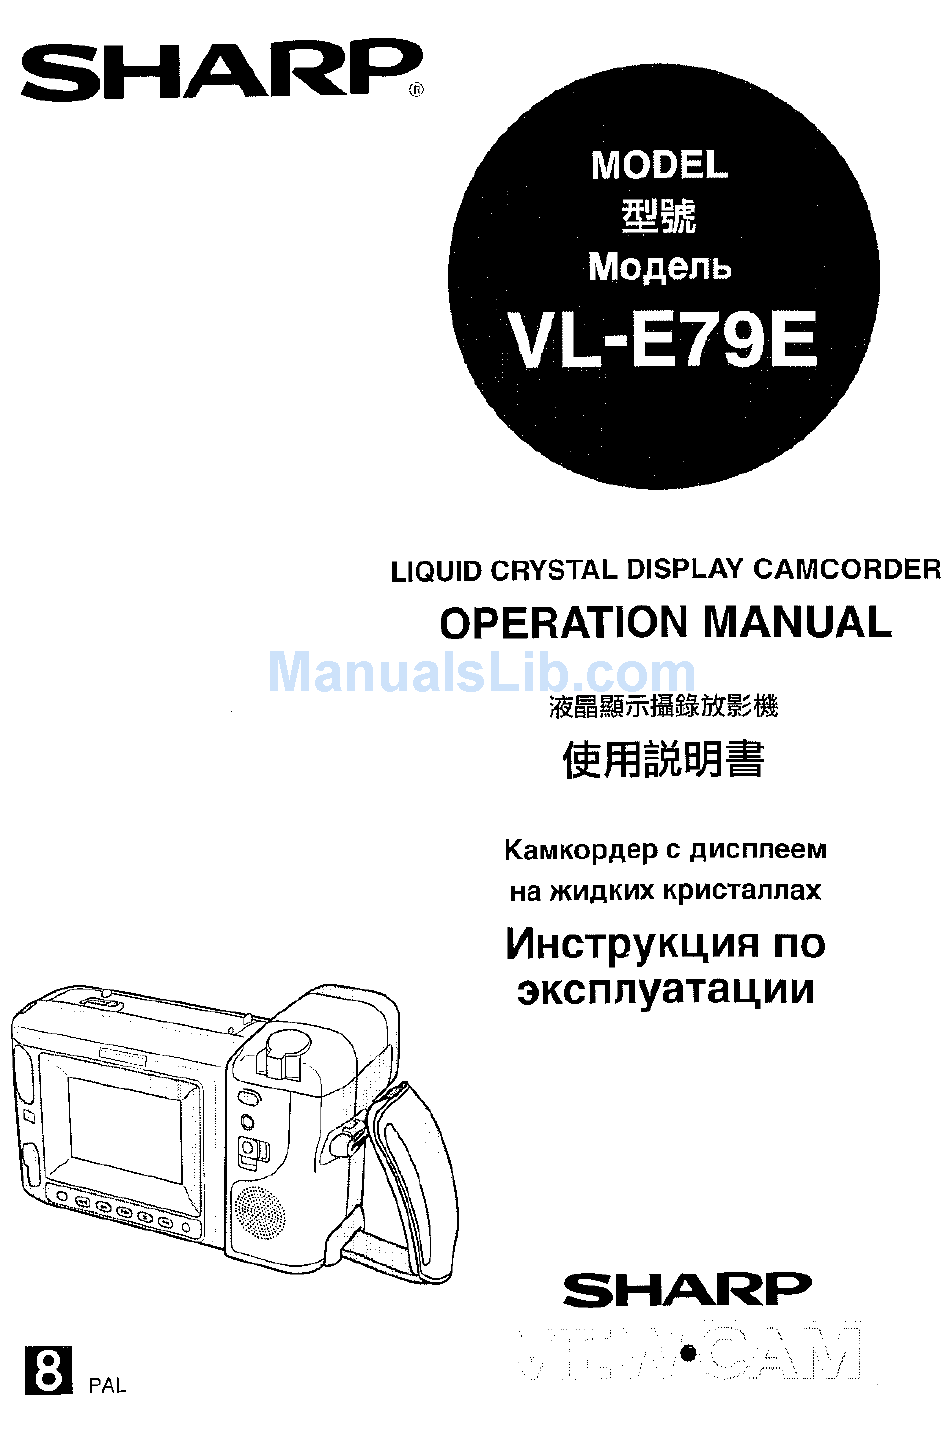 SHARP VIEWCAM VL-E79E OPERATION MANUAL Pdf Download